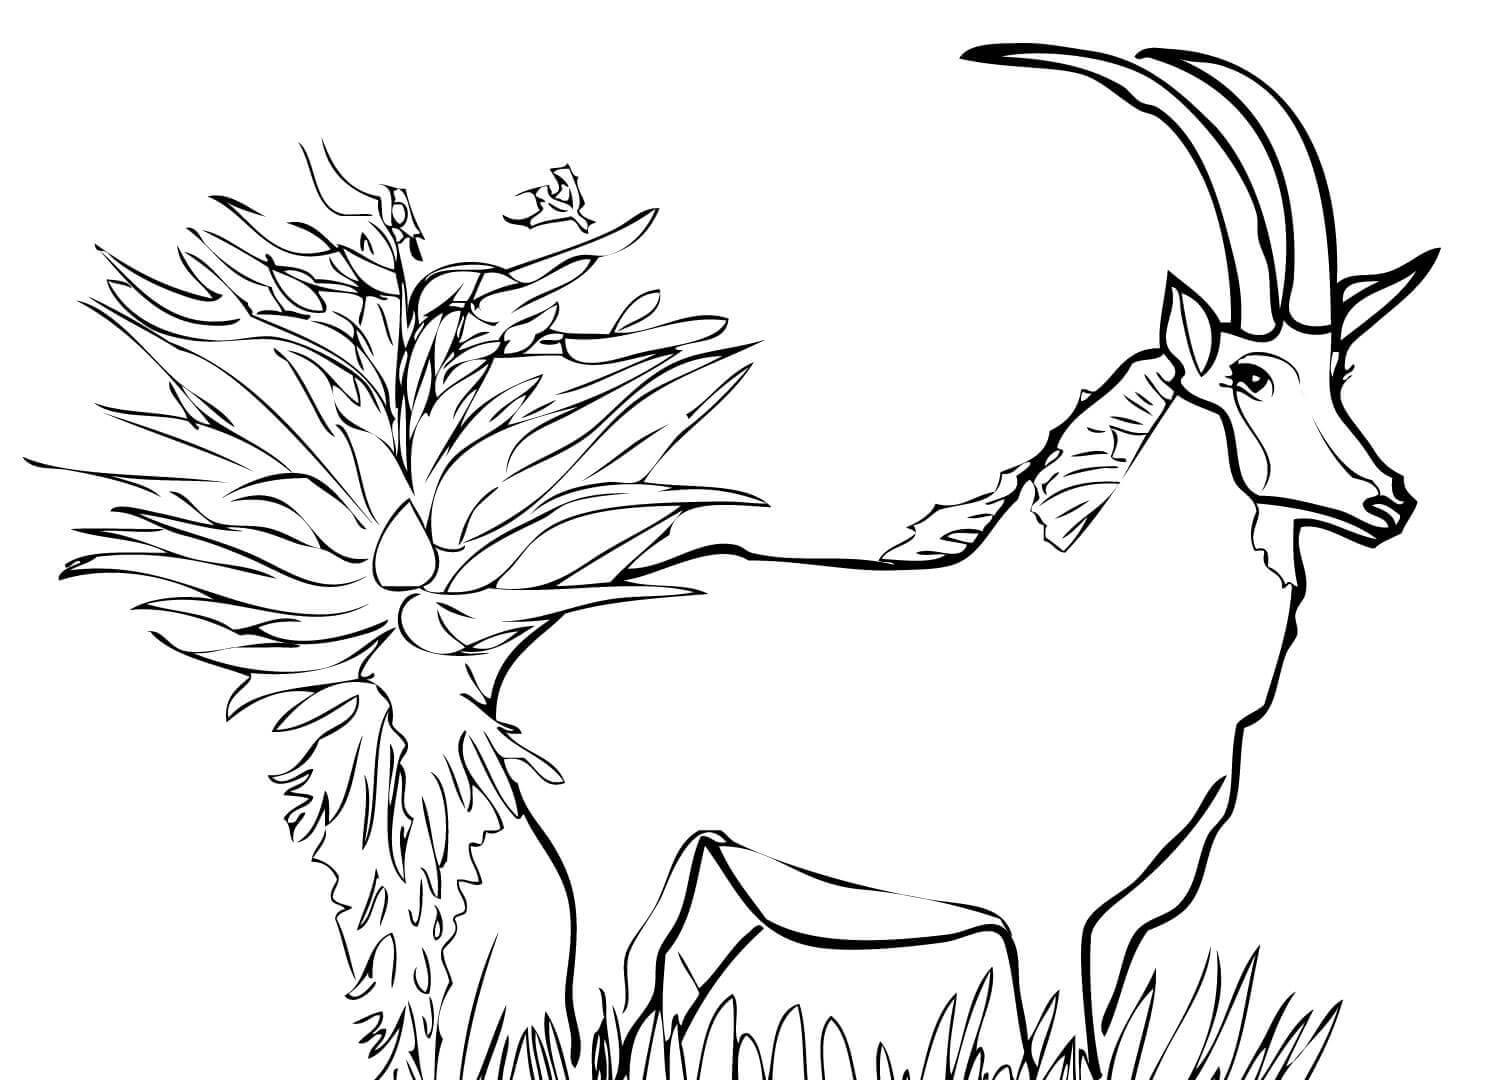 Coloring: Springbok Coloring Pages Download And Print For Free